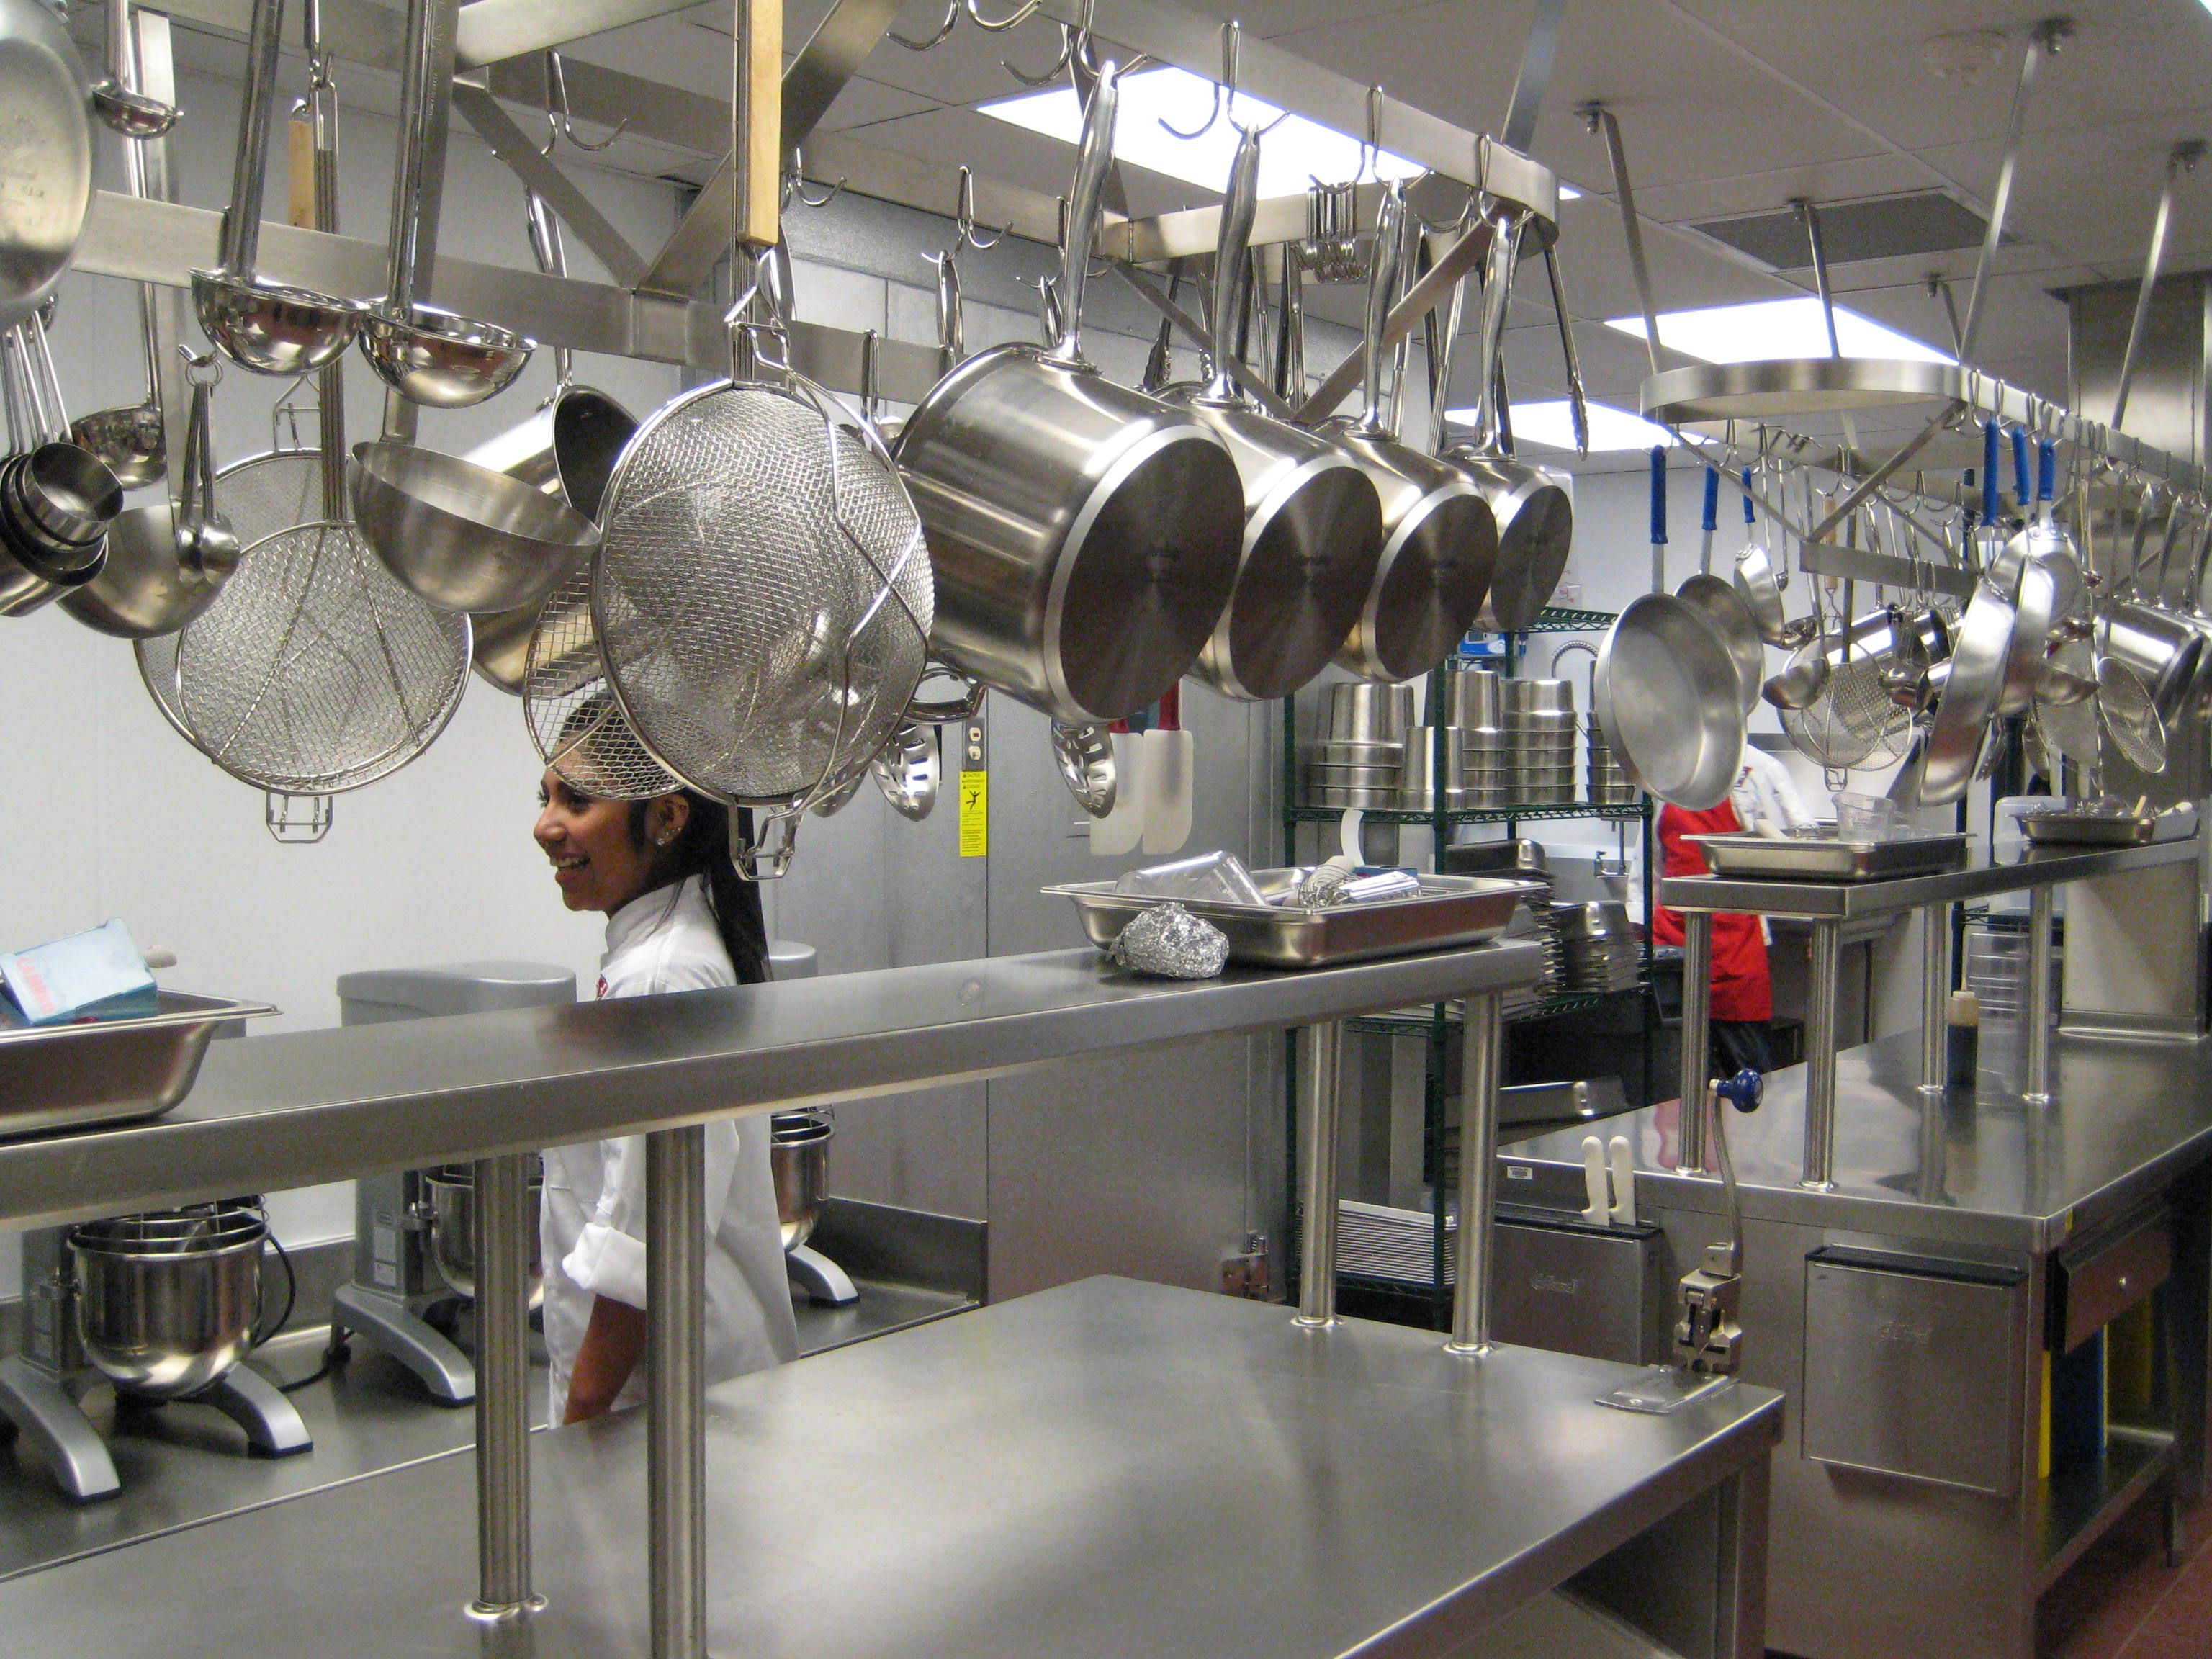 COMMERCIAL KITCHEN COMMERCIAL KITCHENS in 2019